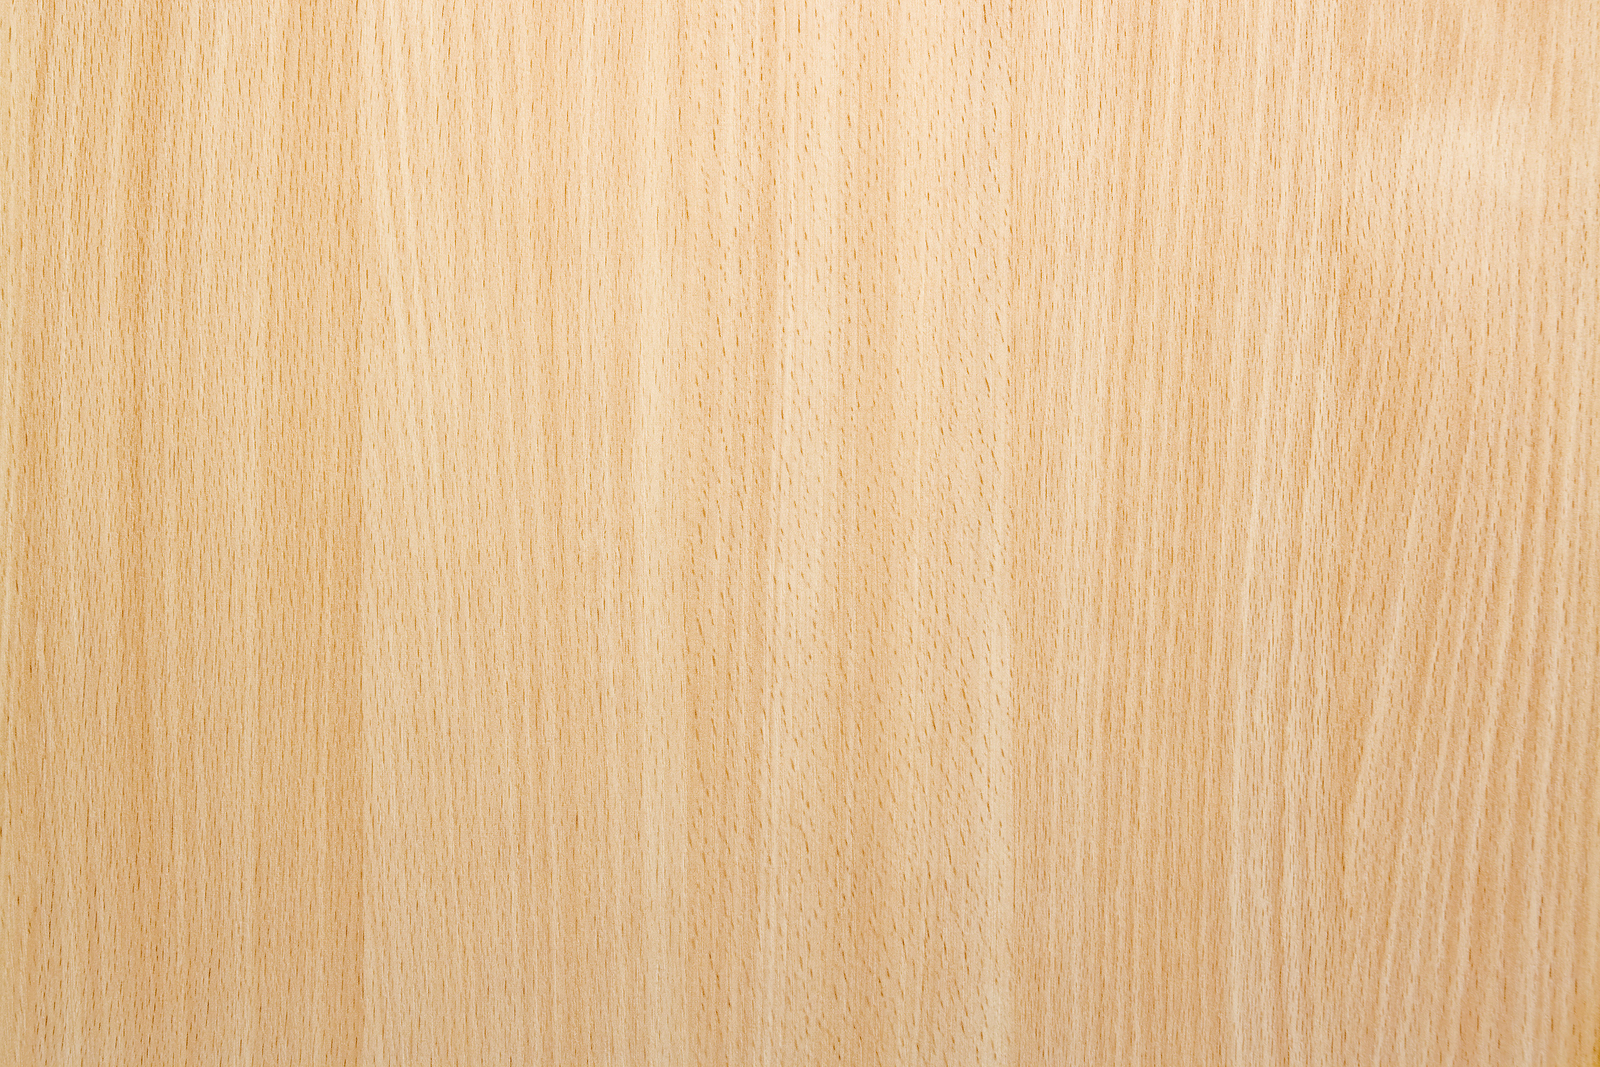 Natural Beech Wood Background Texture Safitri Jati Furniture